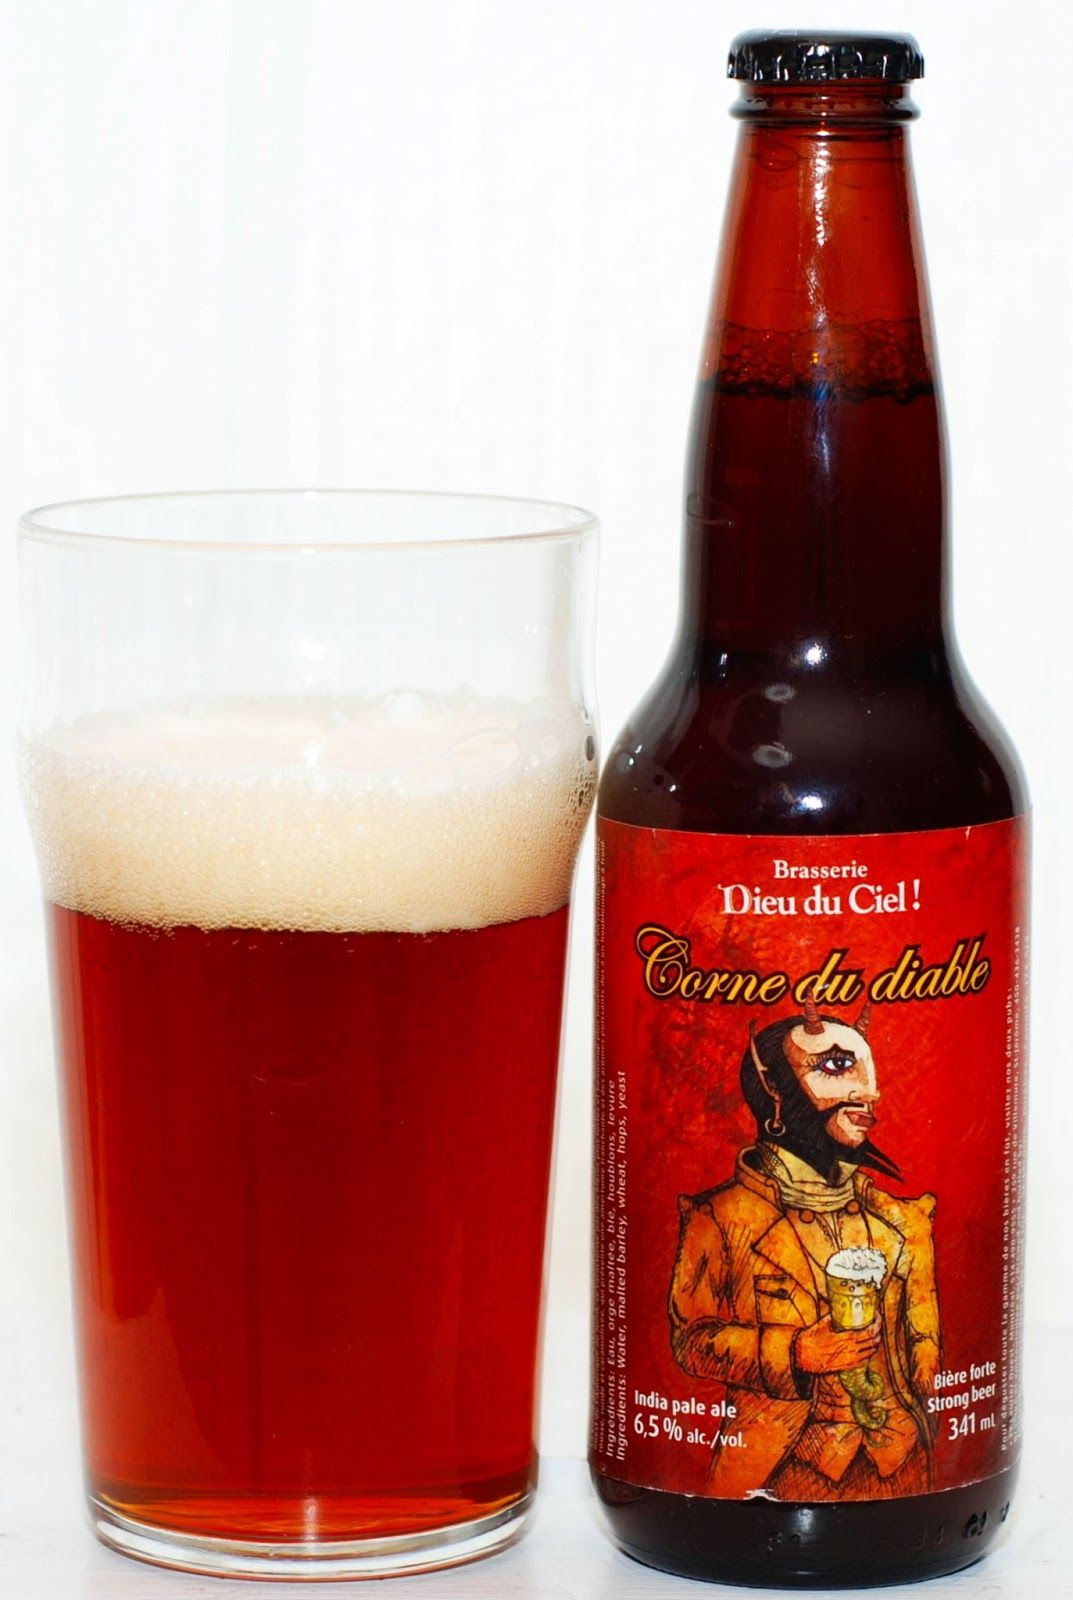 The Corne Du Diable From Dieu Du Ceil Is A Contemporary Adaptation Of The Original English Pale Ales This Interpretation Of Beer English Pale Ale Best Beer